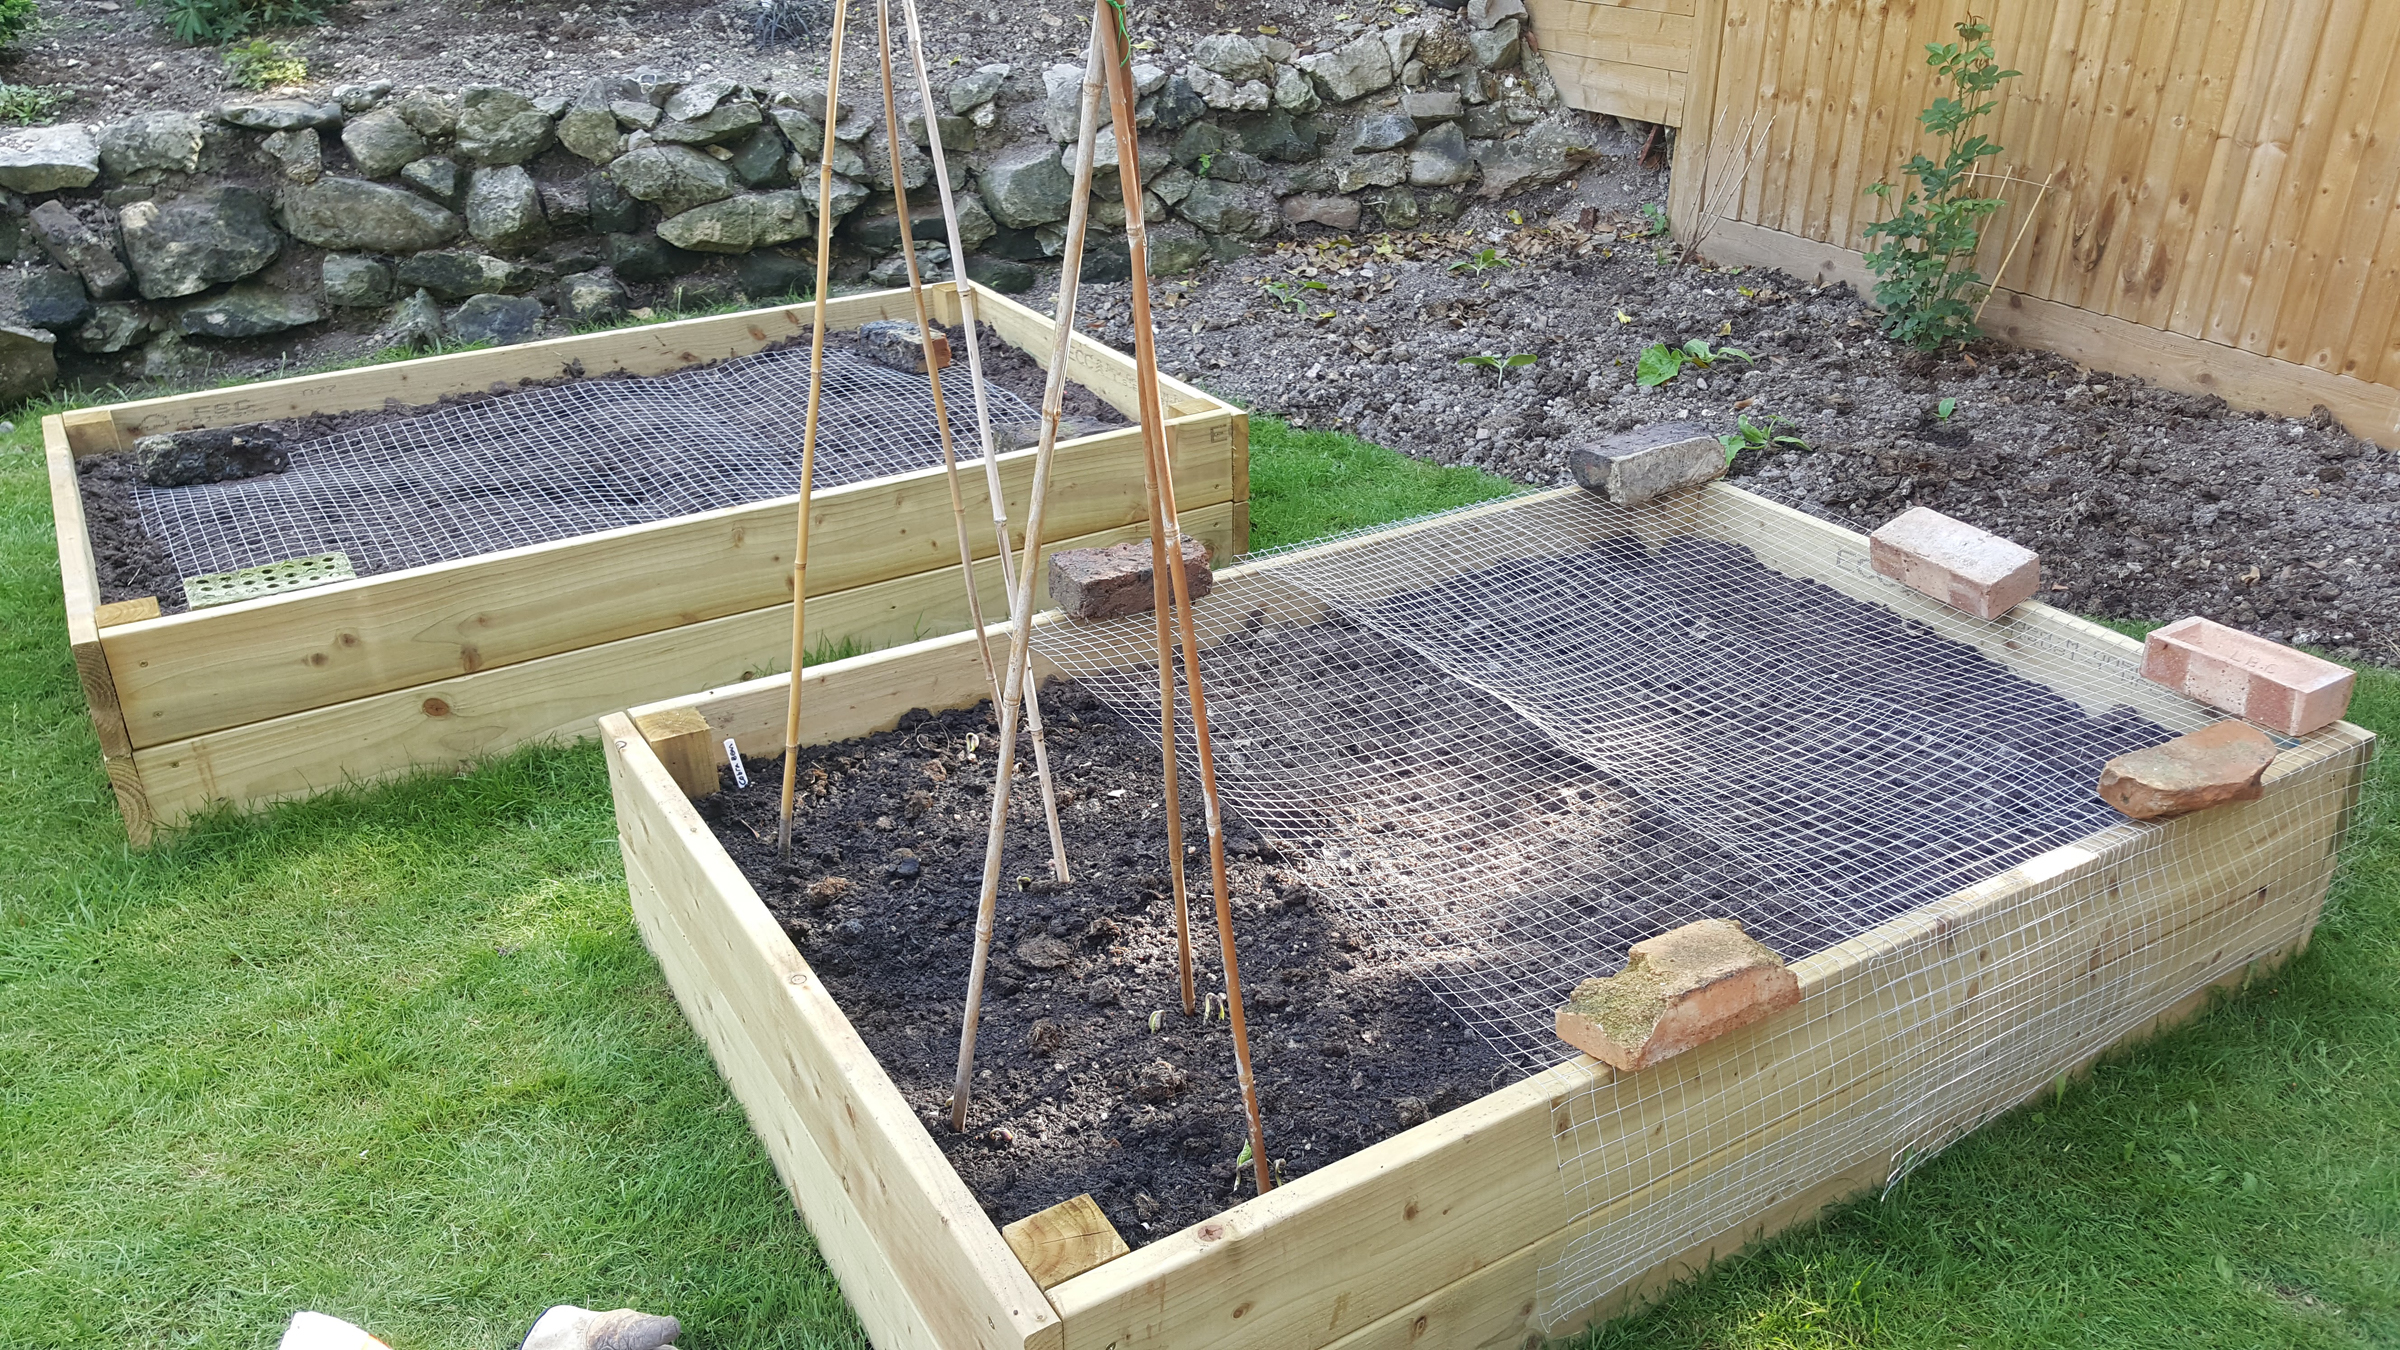 prepared beds with bean poles